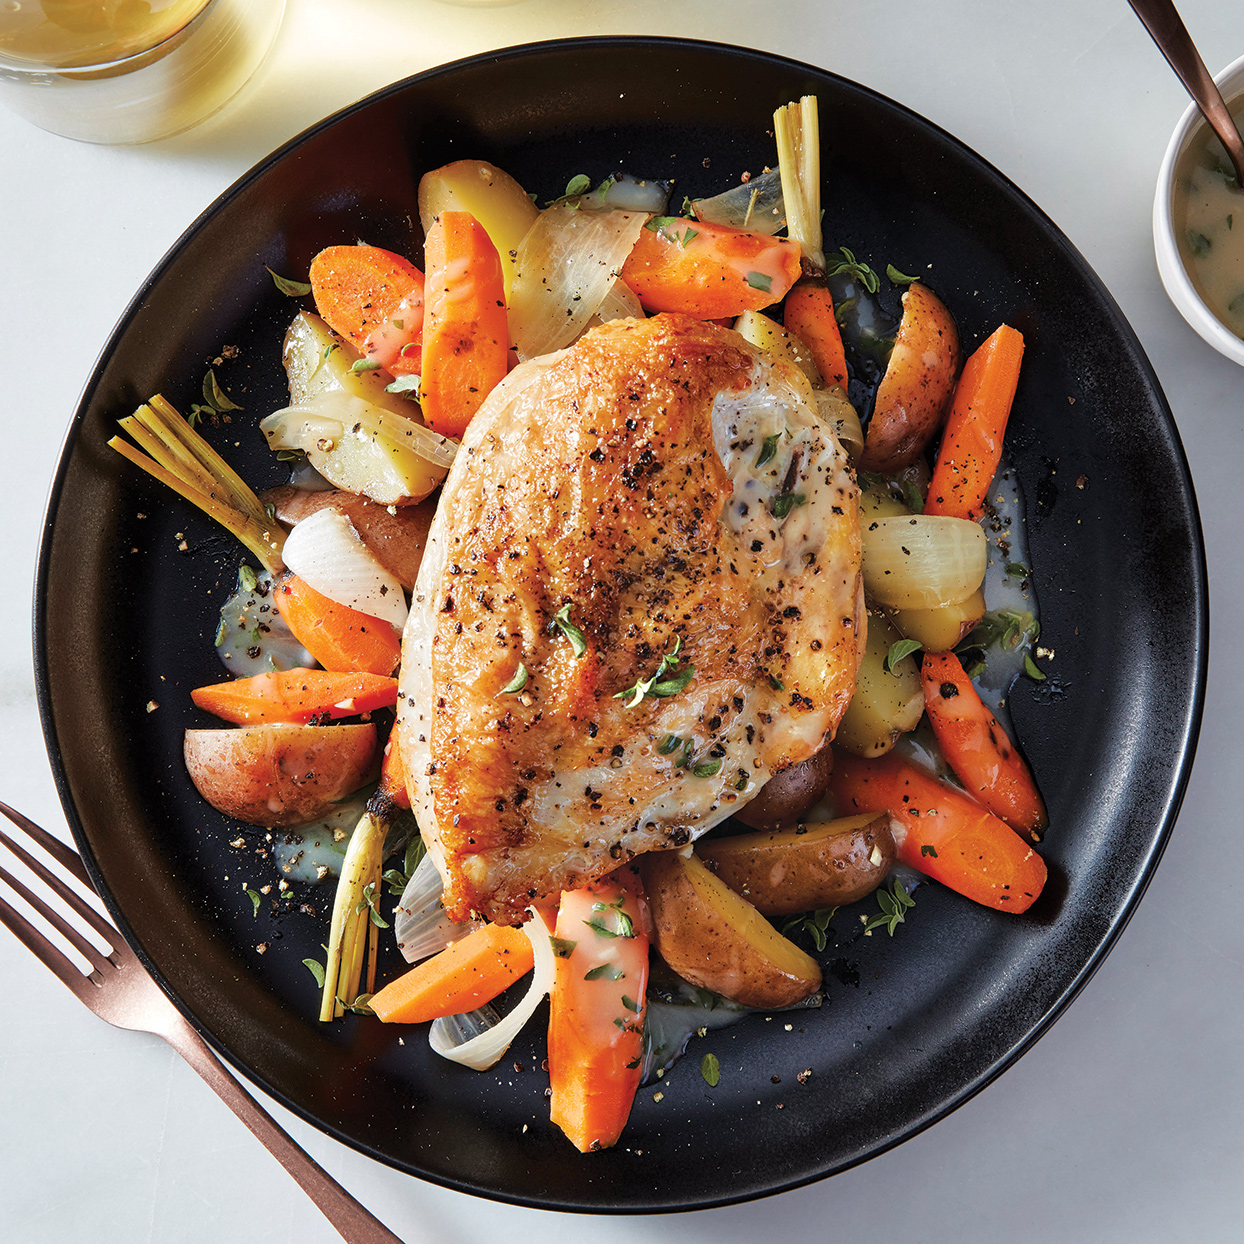 Impress the in-laws, neighbors or any other dinner guests with this pretty dish. It's a slow-cooker chicken recipe that actually looks and tastes like it was oven-roasted. To save time, prep the vegetables a day ahead or in the morning, and then refrigerate until ready to brown the meat and start the slow cooker.